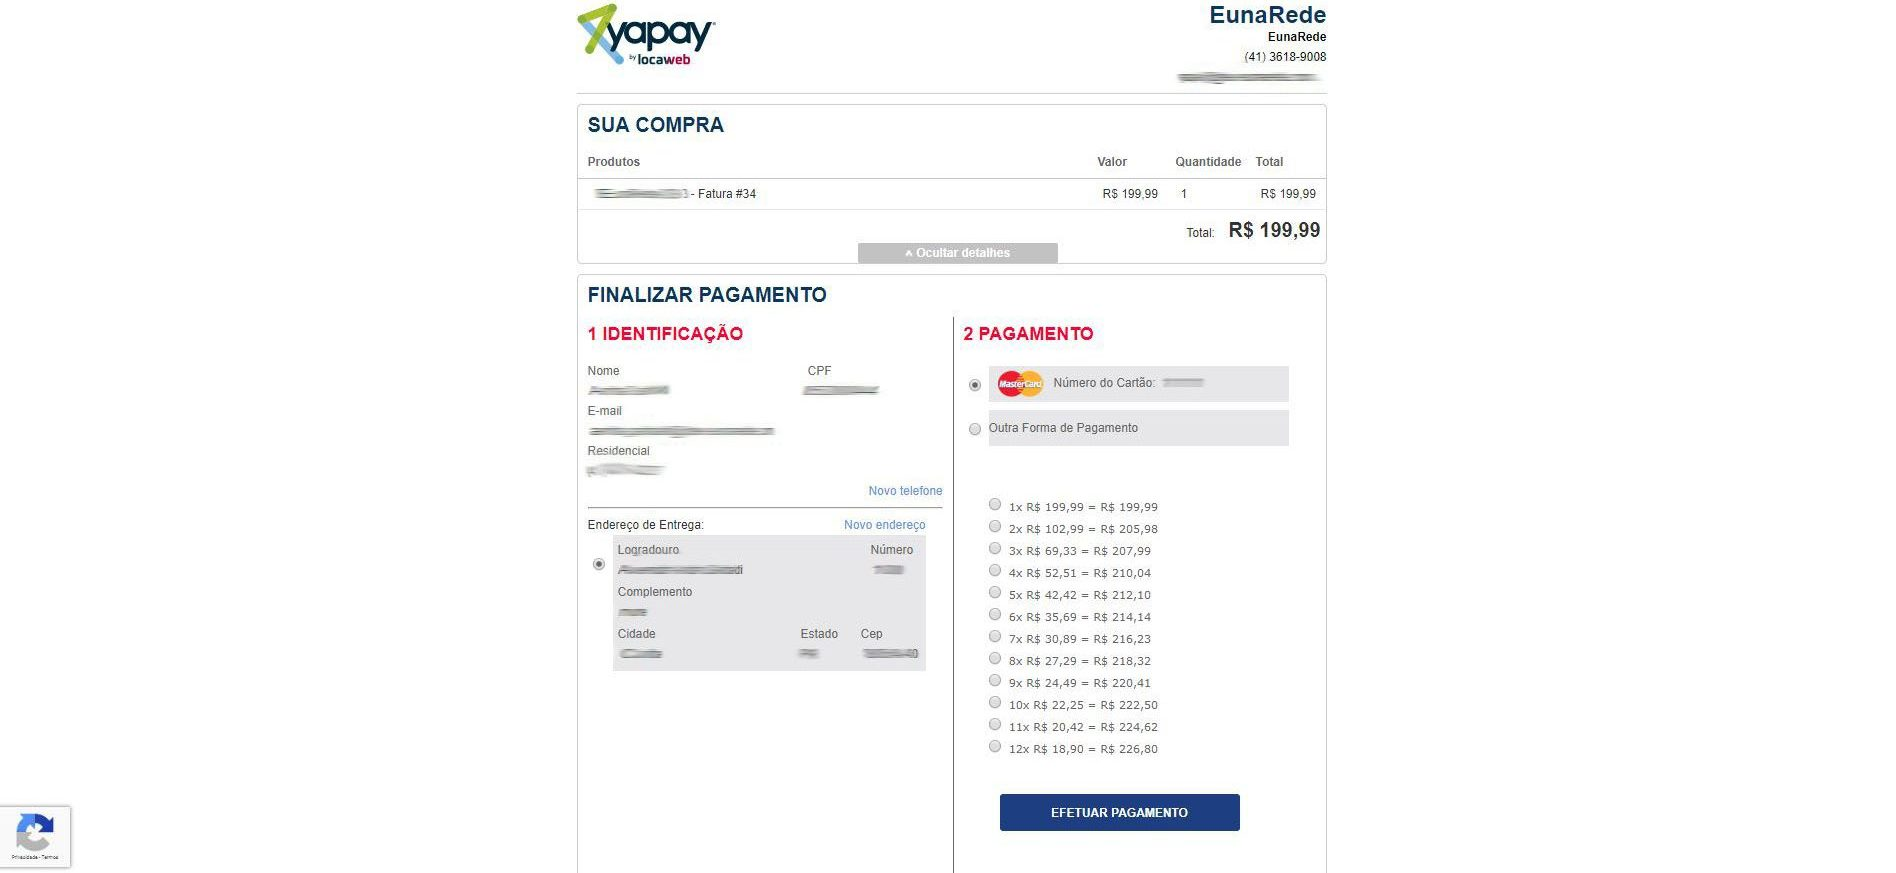 Making the Payment with Yapay for WHMCS